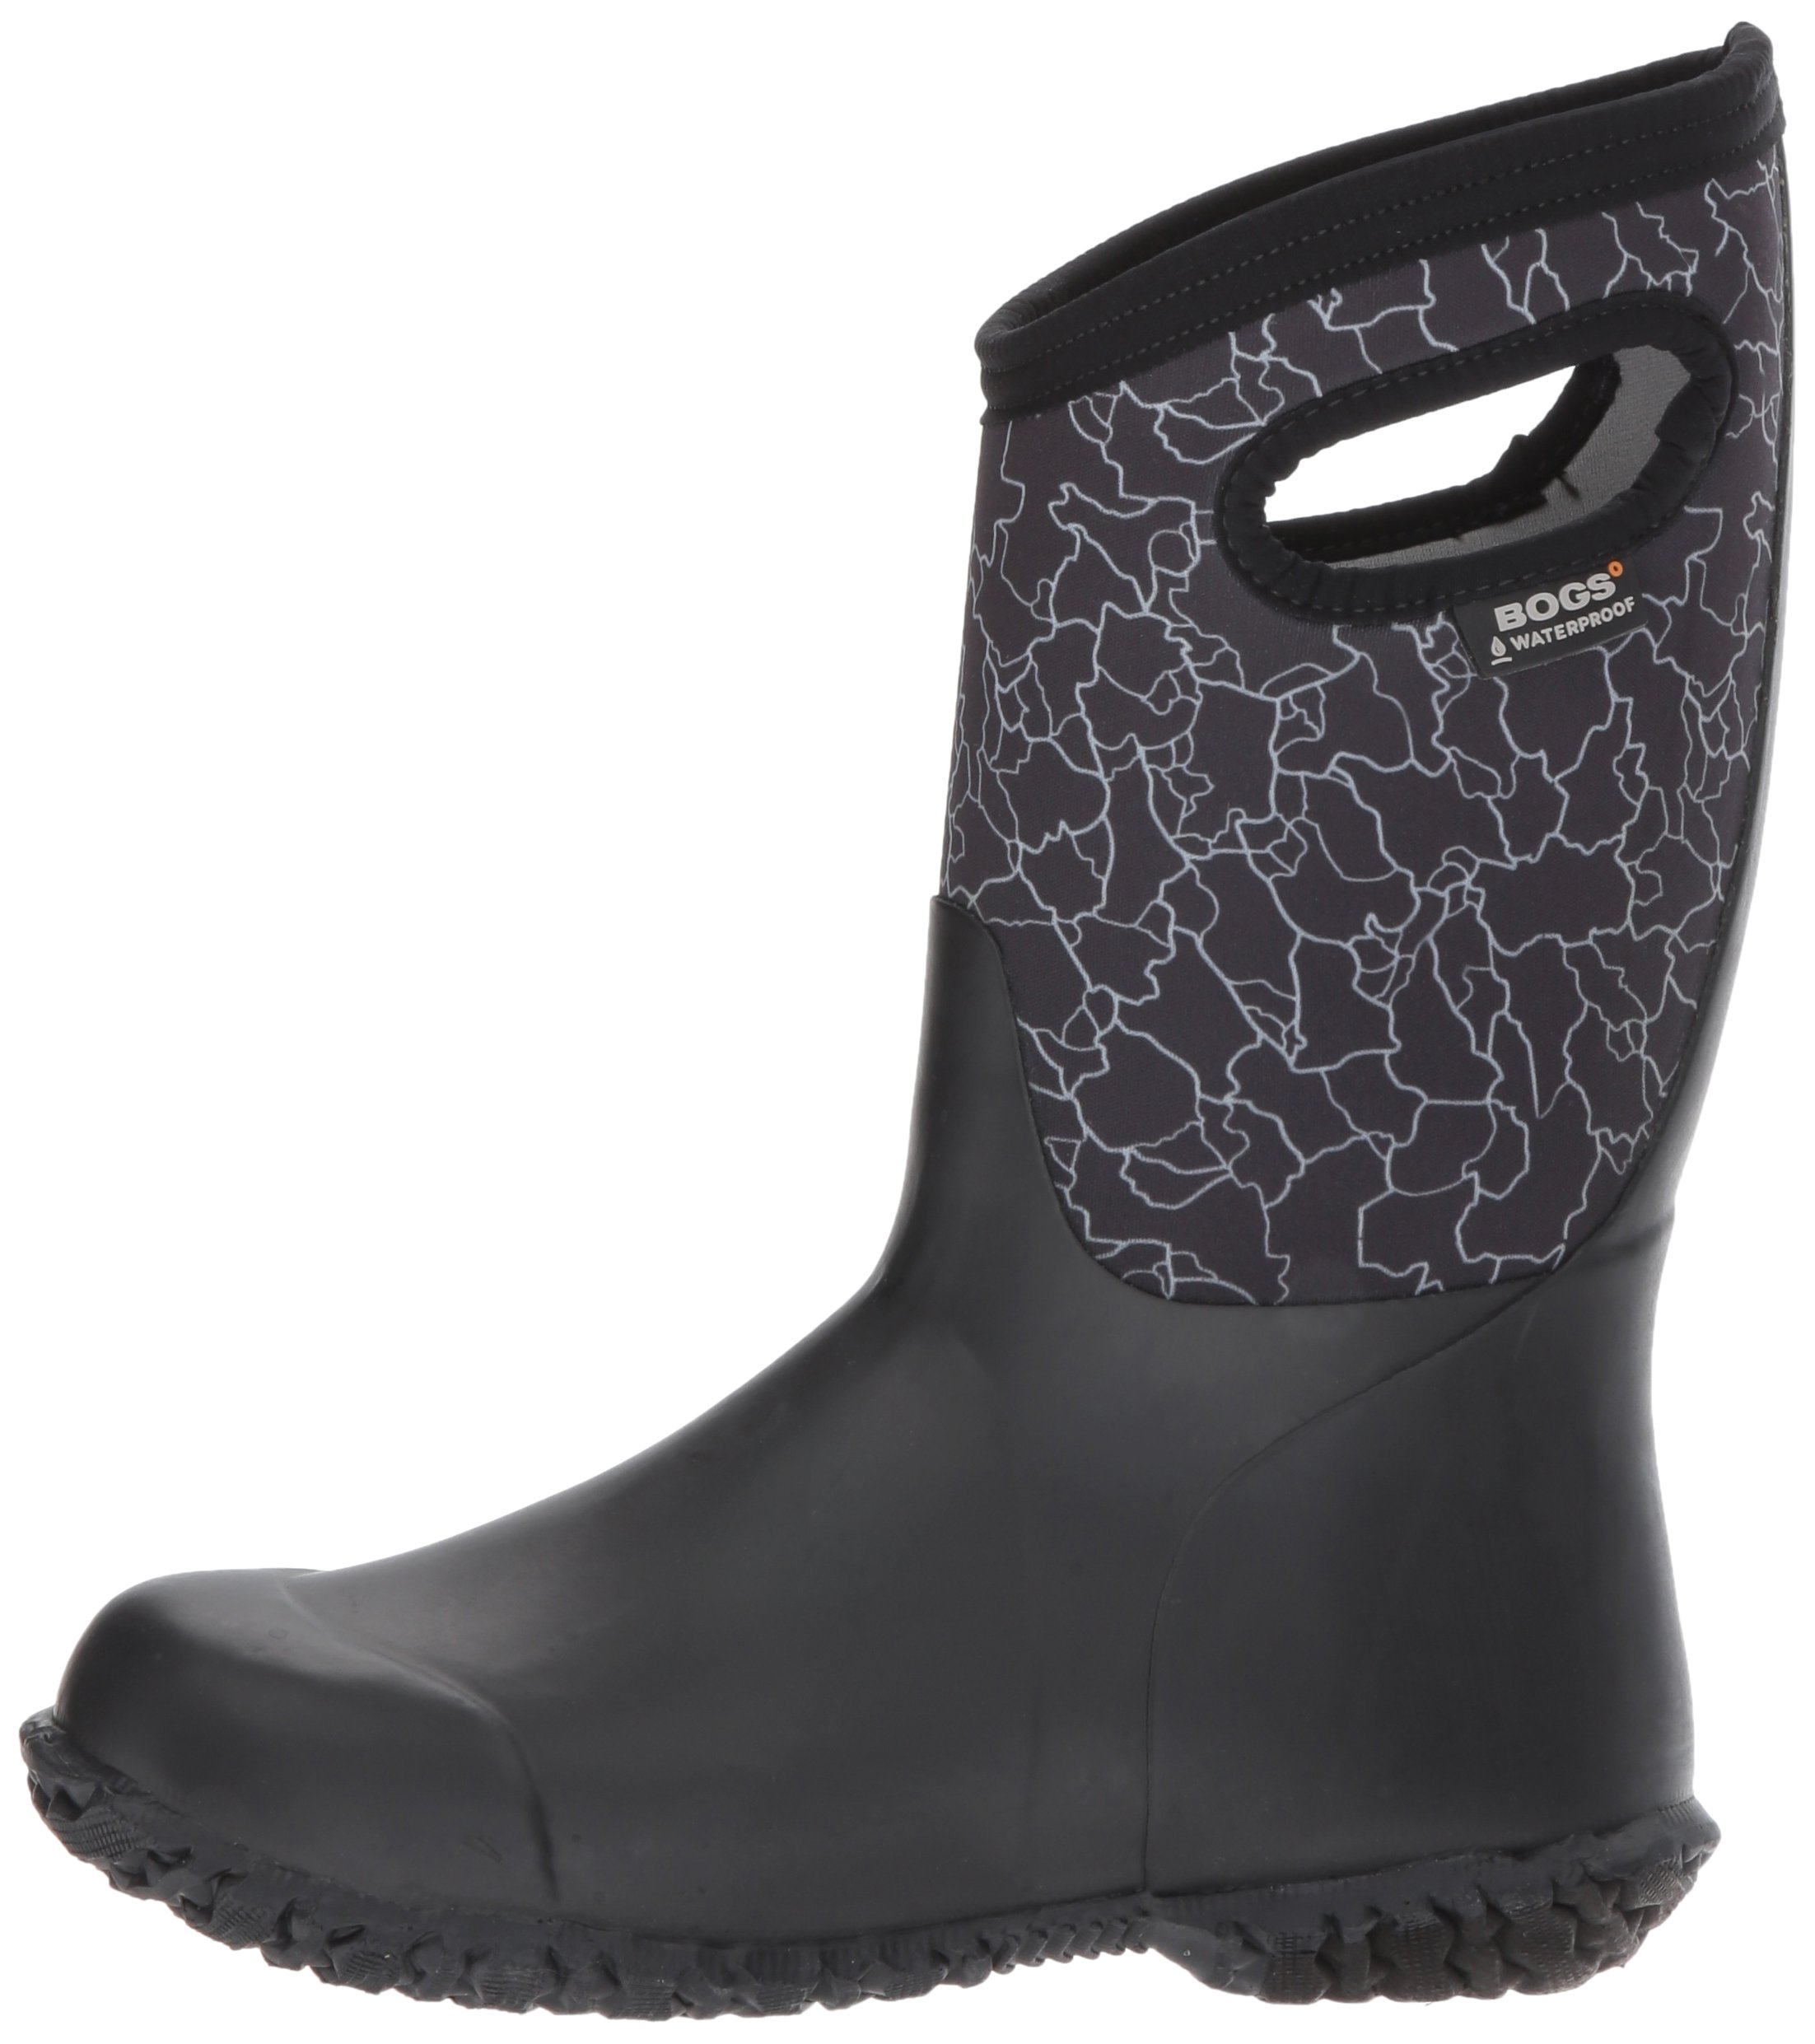 Bogs Durham Kids/Toddler Waterproof Snow Boot for Boys and Girls, Crackle Print/Black/Multi, 12 M US Little Kid by Bogs (Image #5)